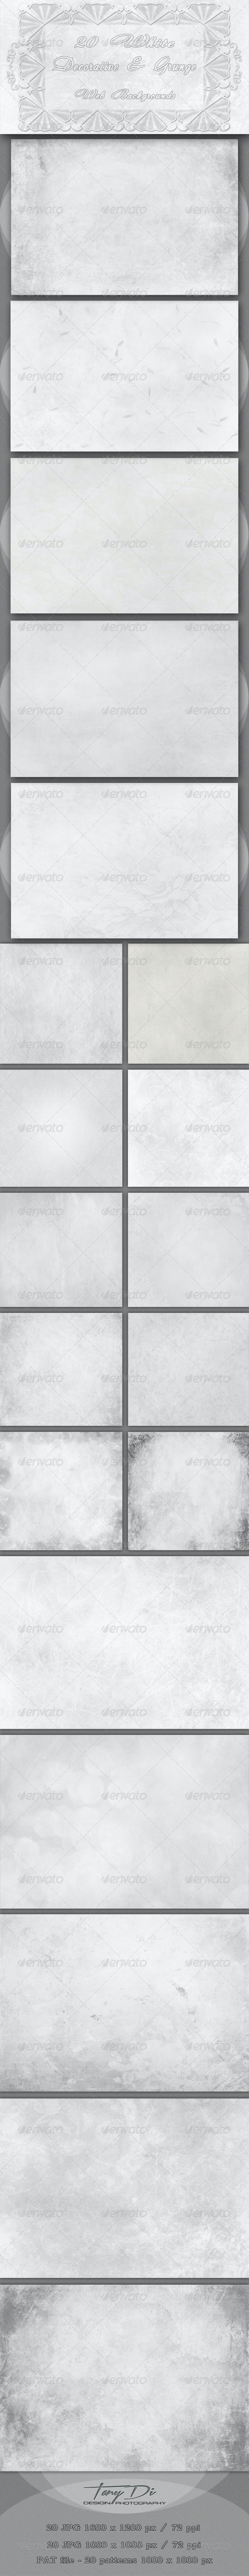 20 White Decorative and Grunge Web Backgrounds - Miscellaneous Backgrounds